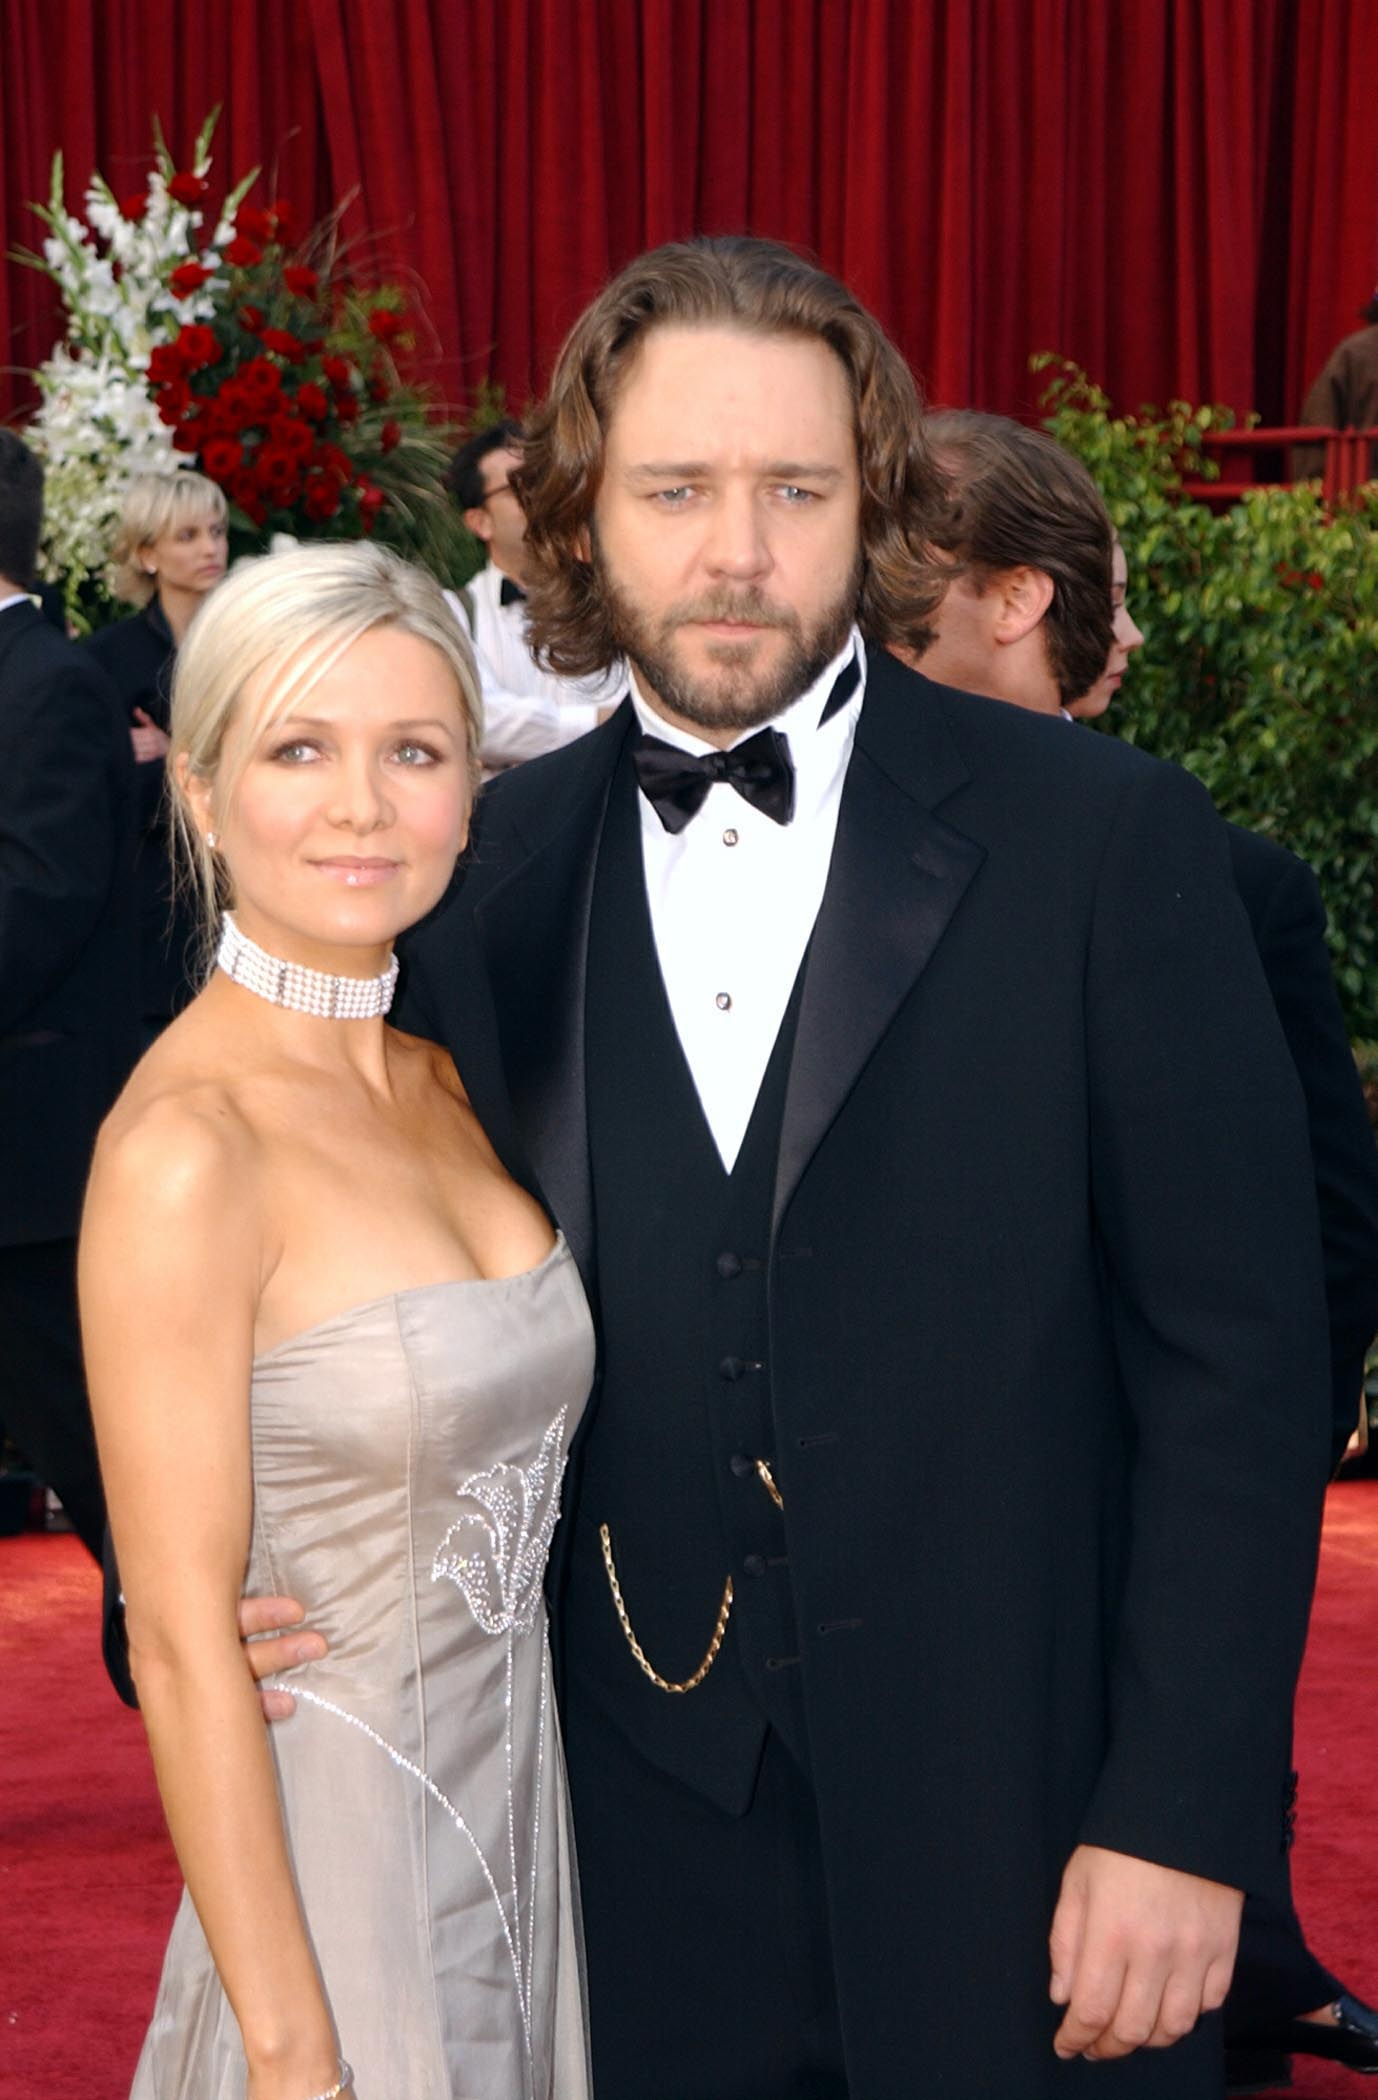 Russell Crowe and Danielle Spencer during The 74th Annual Academy Awards in 2002.